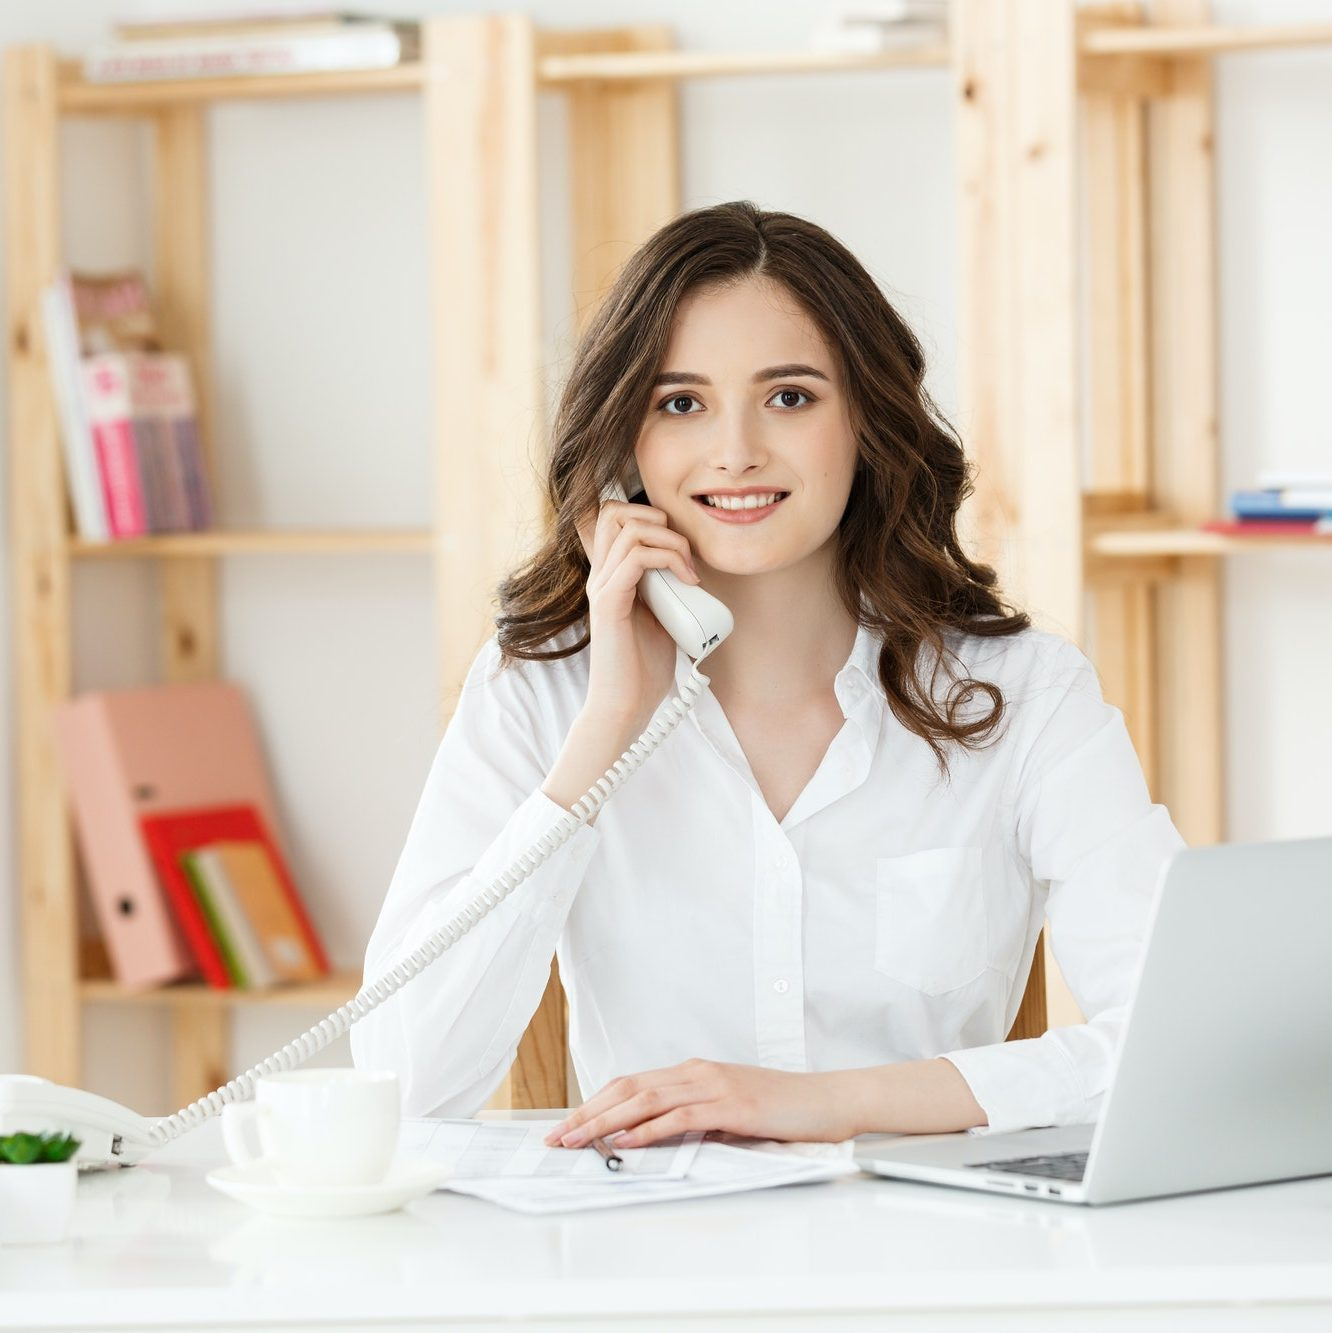 Young woman talking on phone in modern office